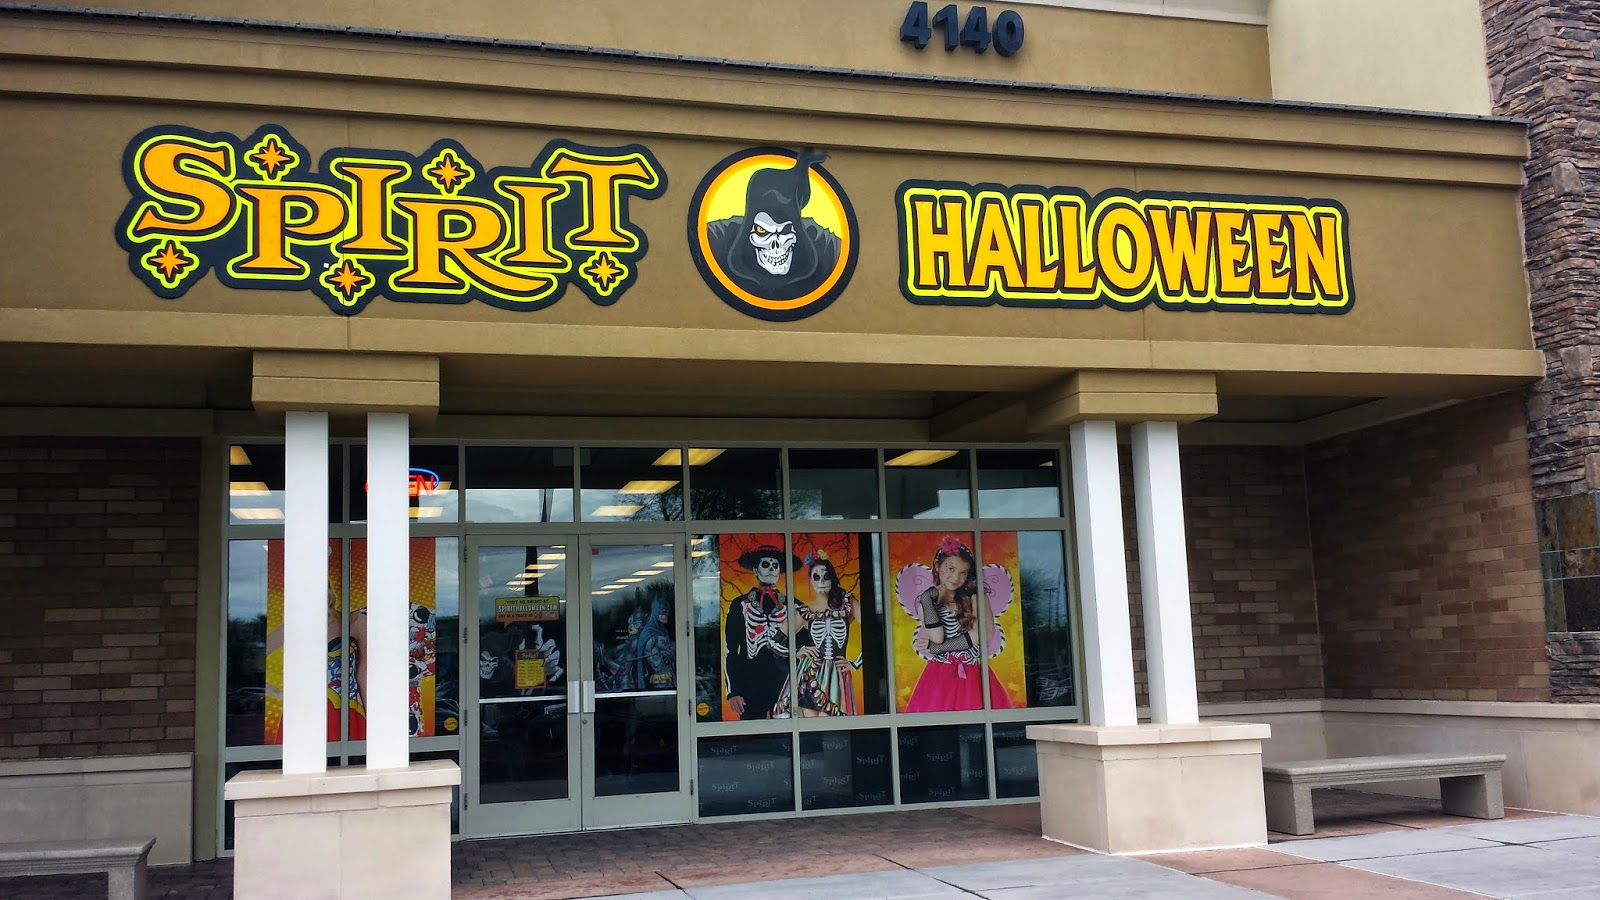 Spirit Halloween stores accepts returned items within 14 days of their original purchase. The returned items must still be in their original packaging and have no signs of wear or use. During the Halloween season, online purchases can be returned in stores. The .